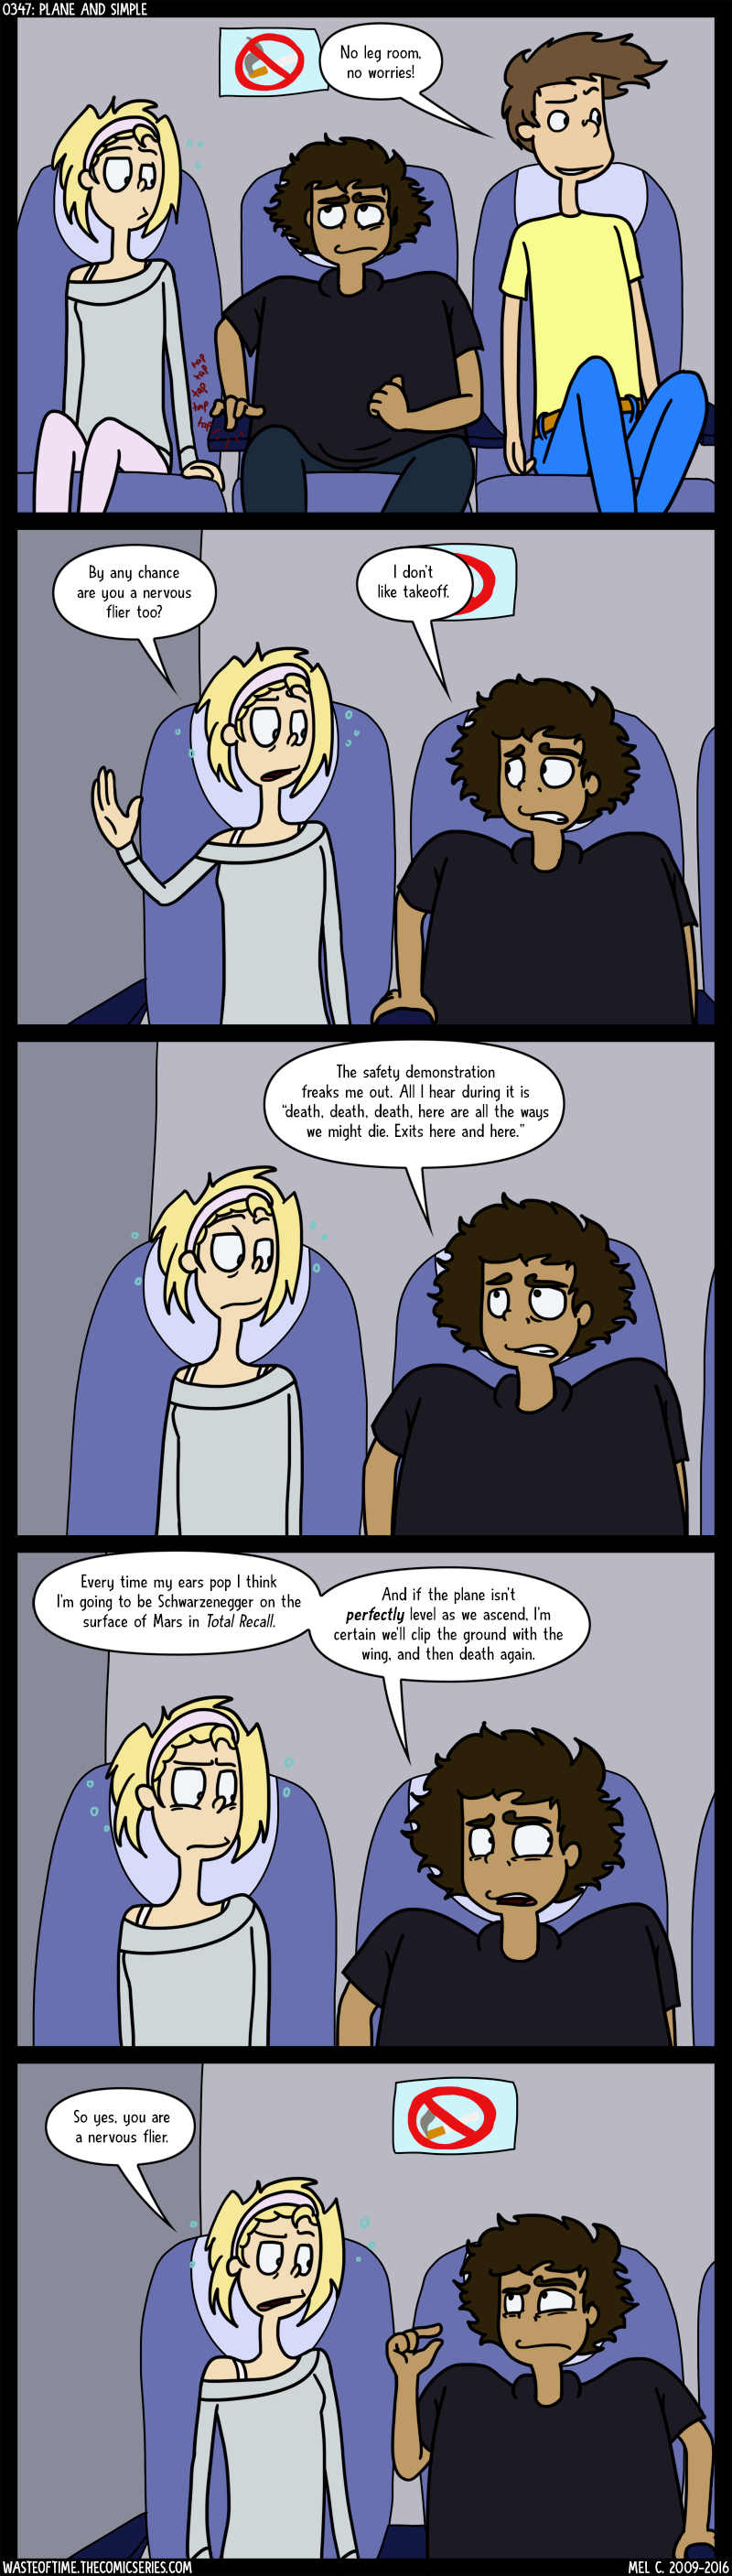 0347: Plane and Simple